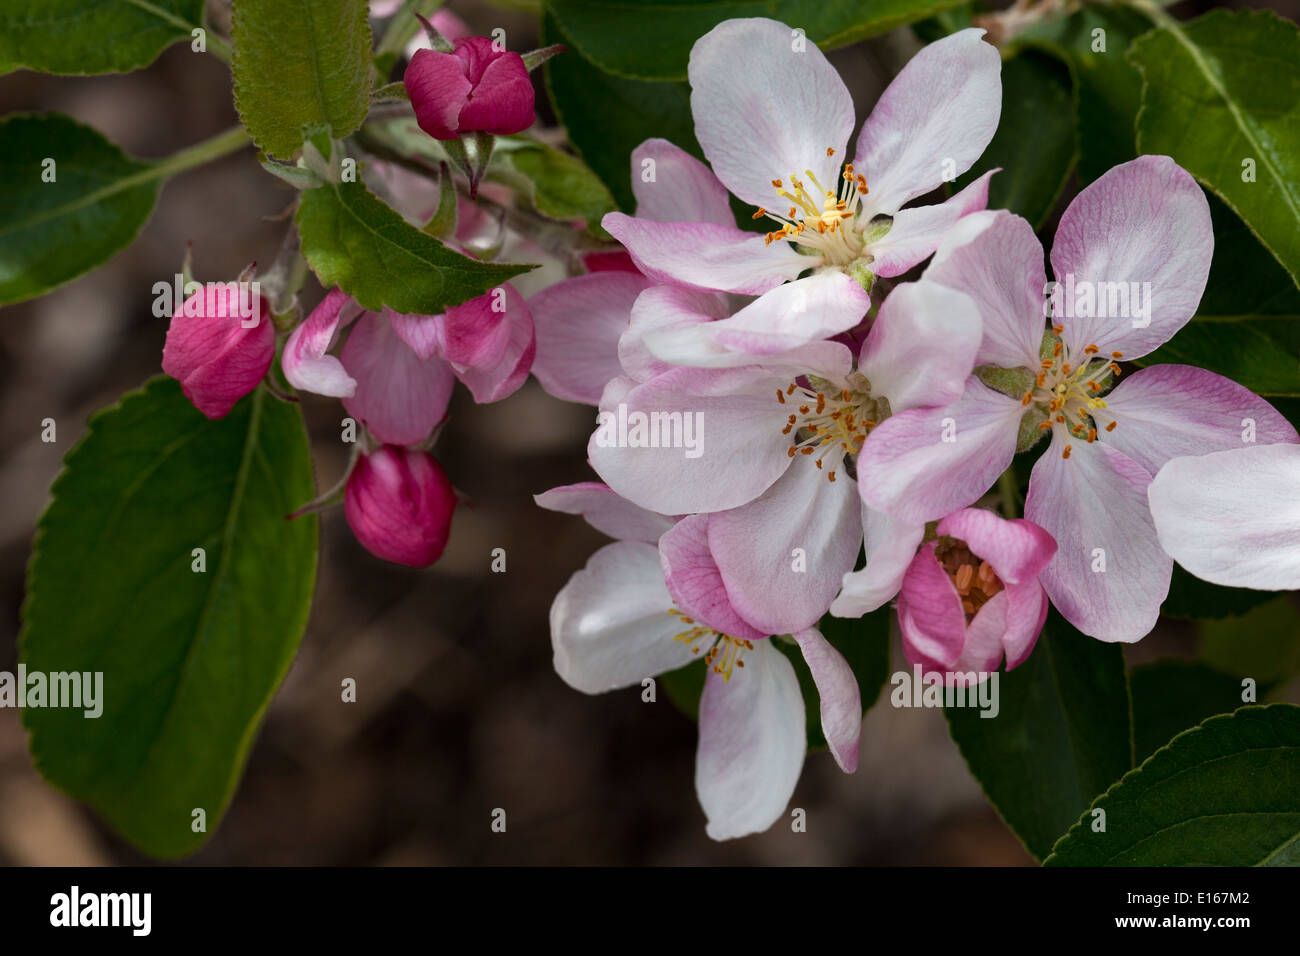 Herefordshire Russet Apple Blossom Close up - Stock Image